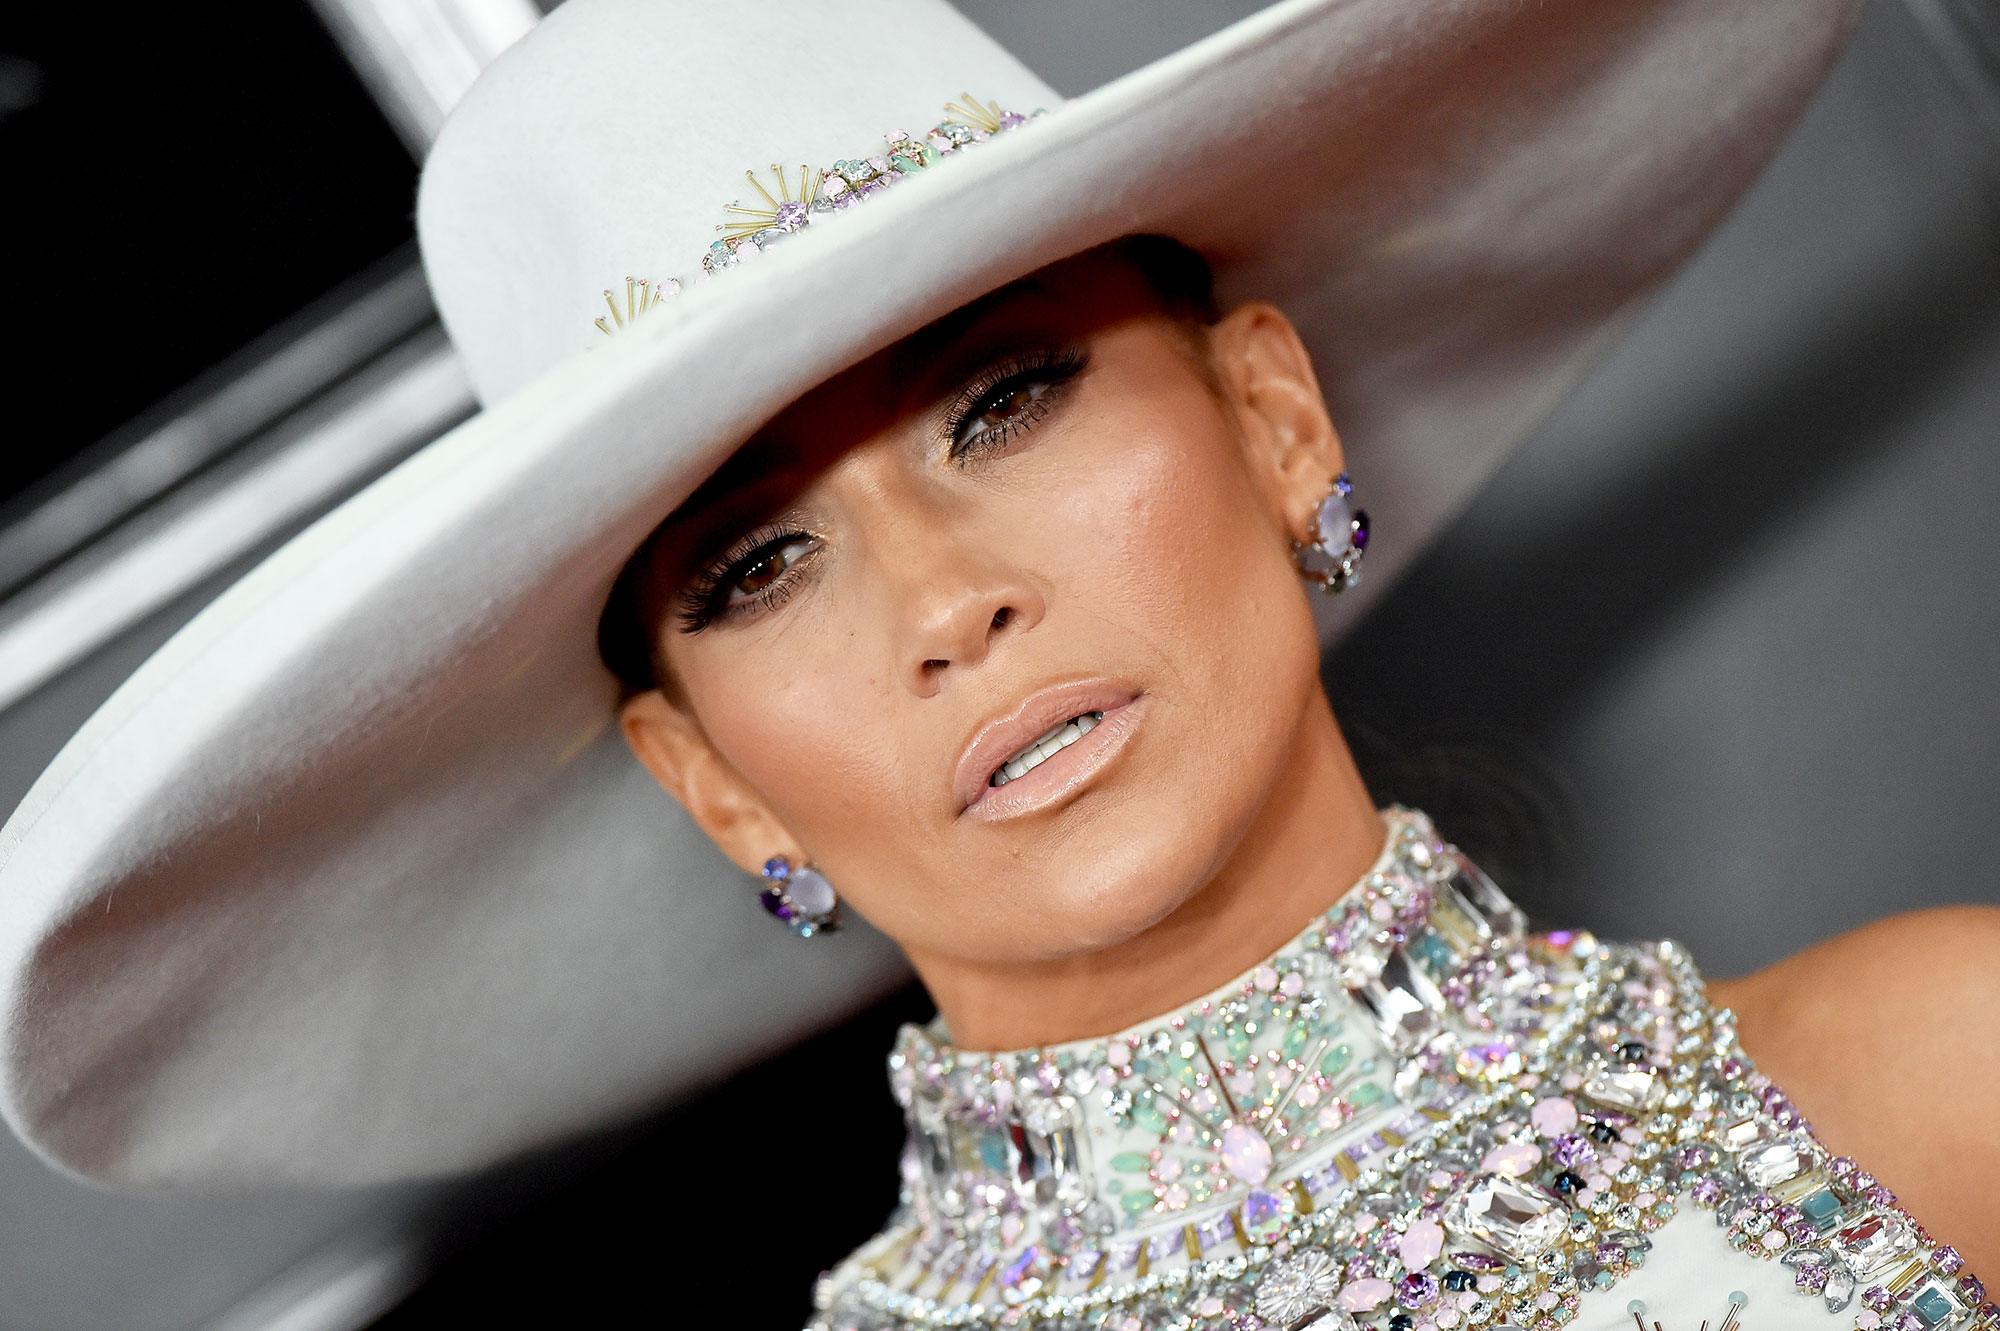 grammys 2019 Jennifer Lopez - Even though it was hard to see underneath her hat, the Grammy's performer wore a beautiful pair of Niwaka earrings.